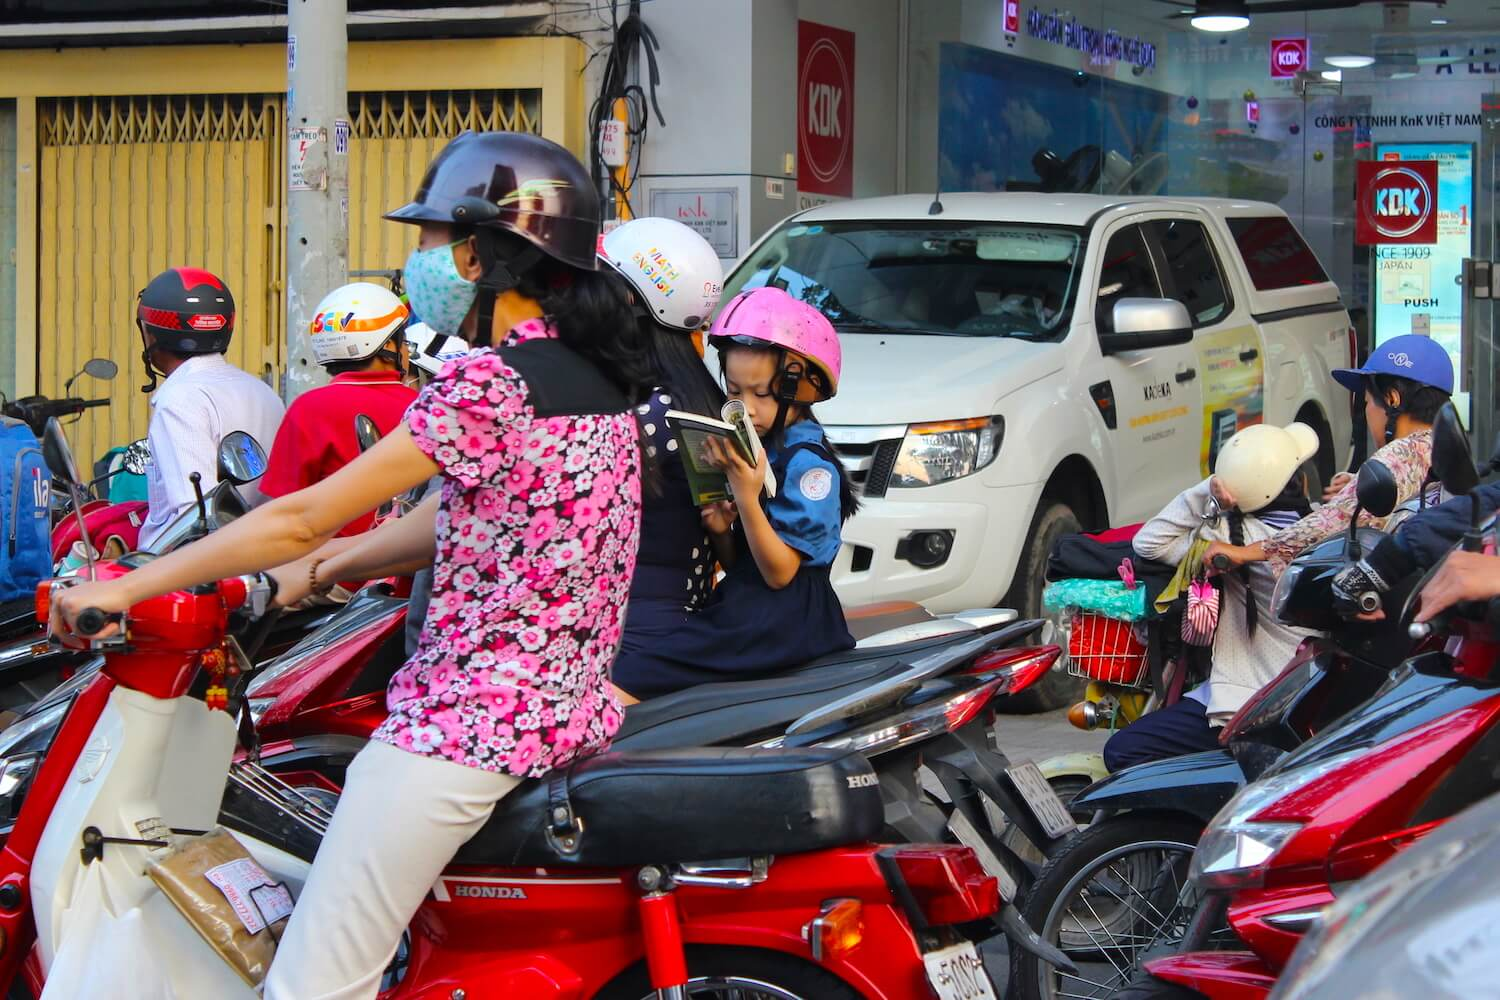 ho chi minh city girl on motorcycle